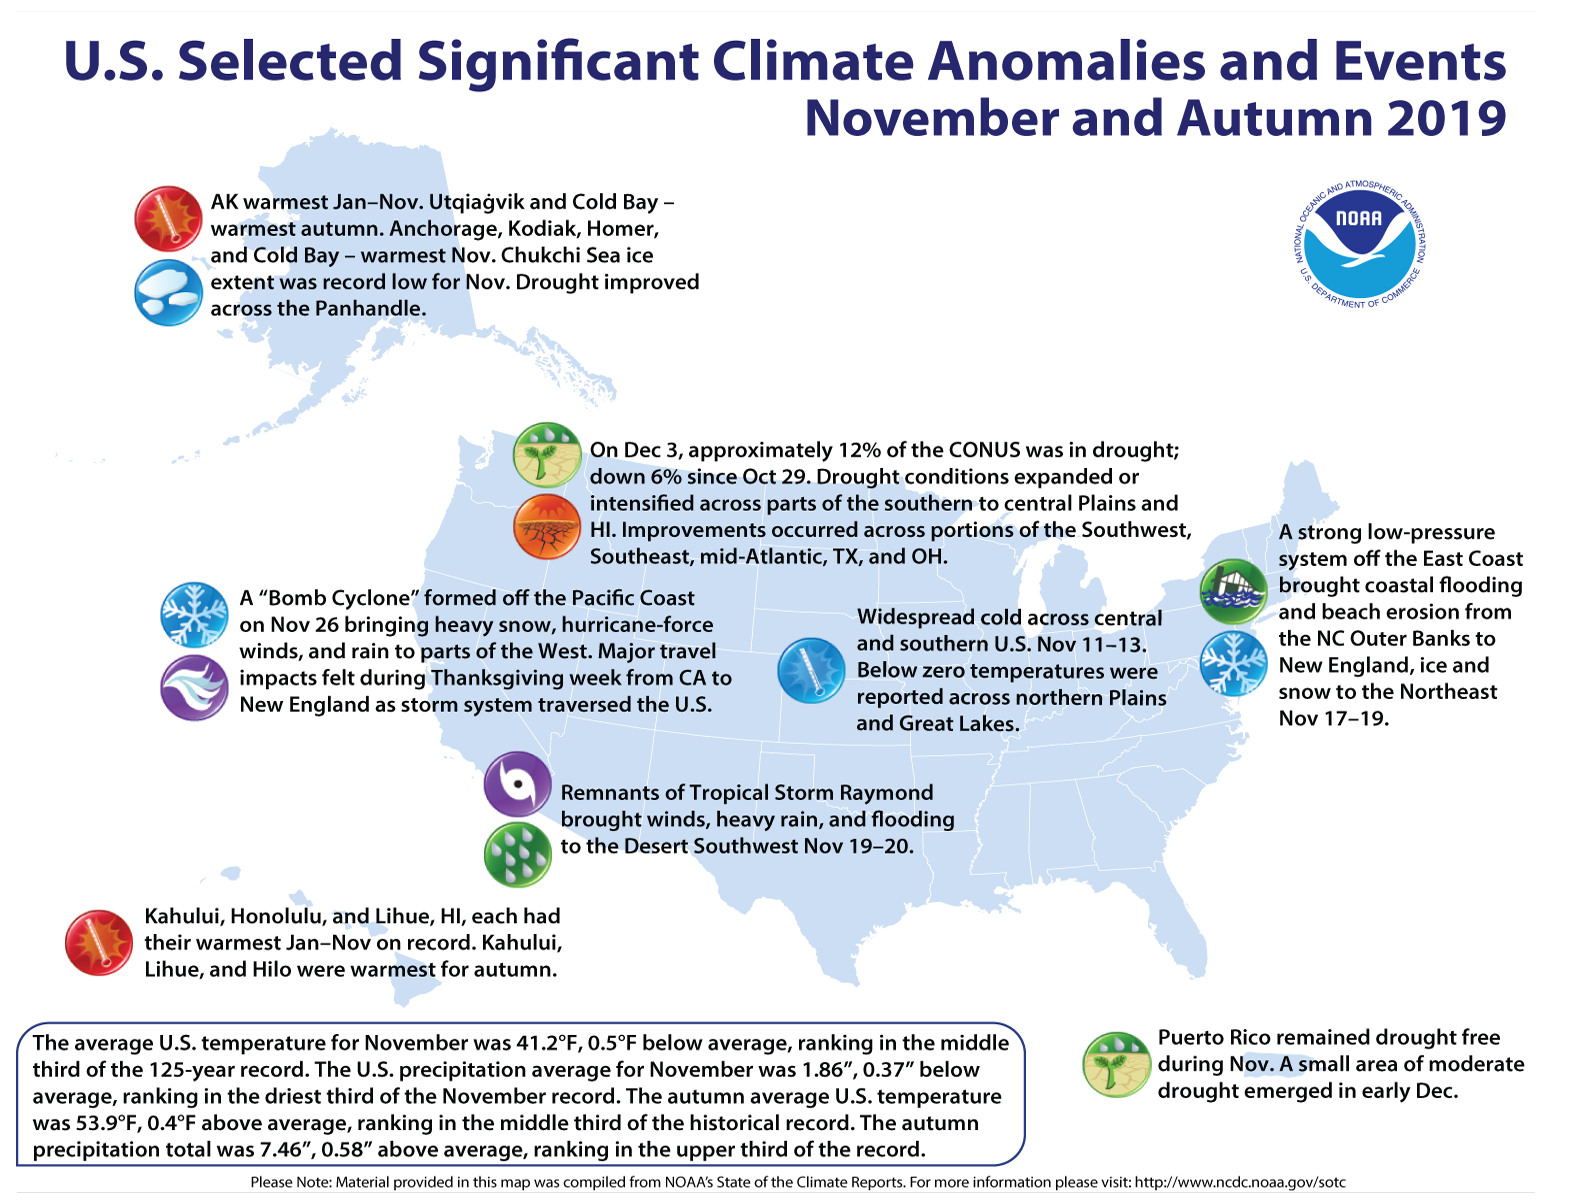 November Extreme Weather/Climate Events